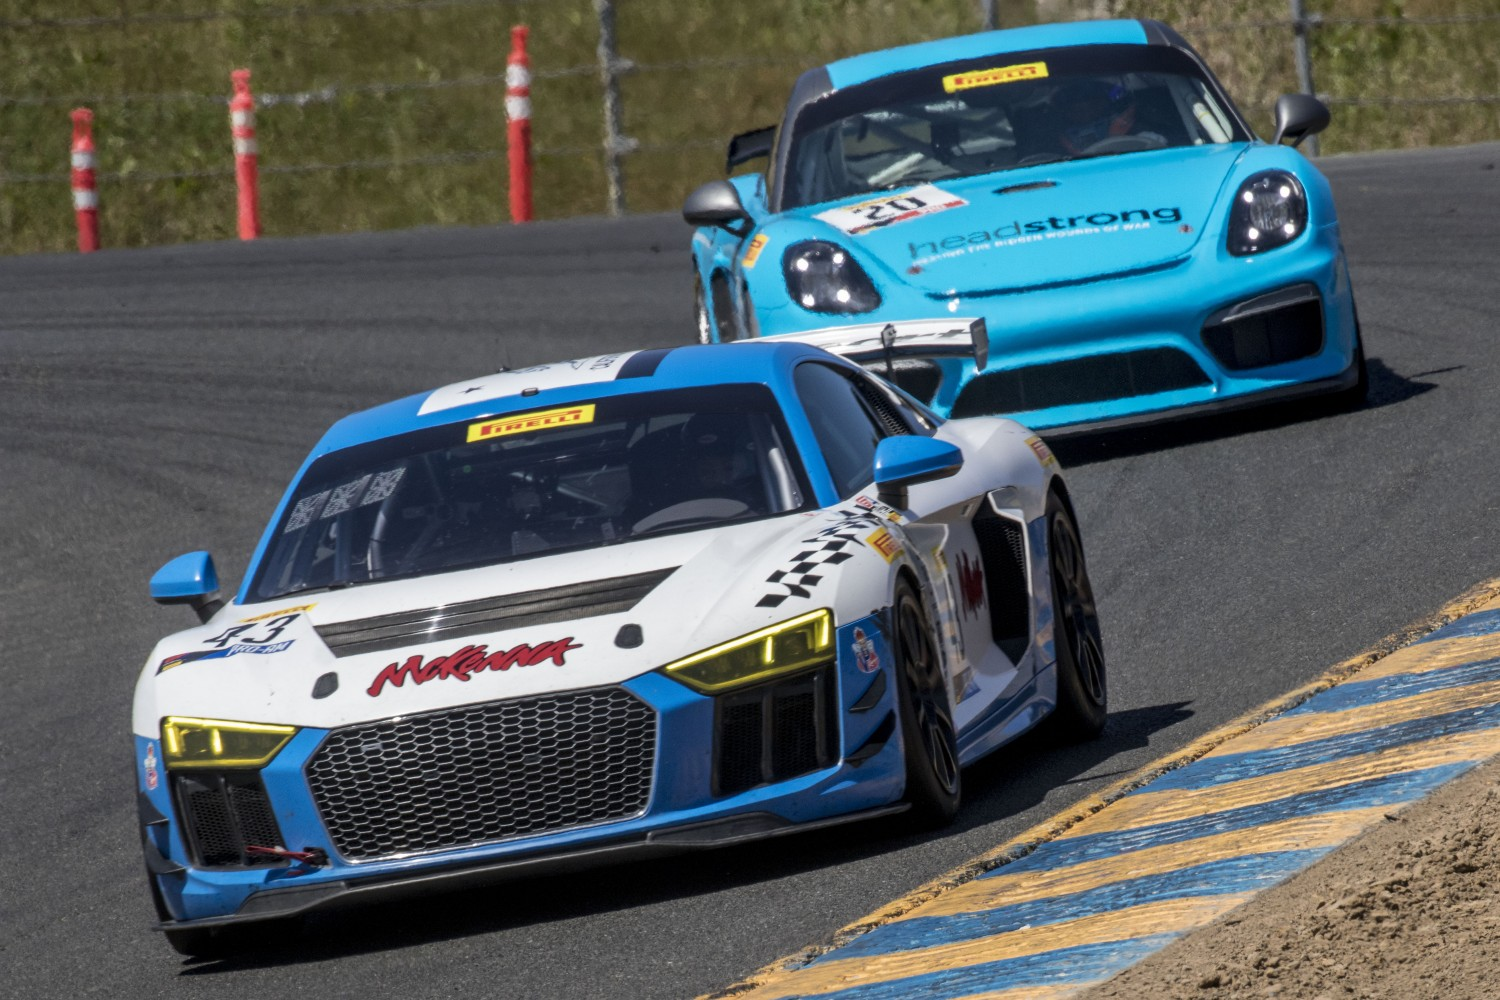 #43, Rearden Racing, Audi R8 LMS GT4, Sarah Cattaneo and Owen Trinkler, CRG LLC, SRO at Sonoma Raceway, Sonoma CA  | Brian Cleary/SRO